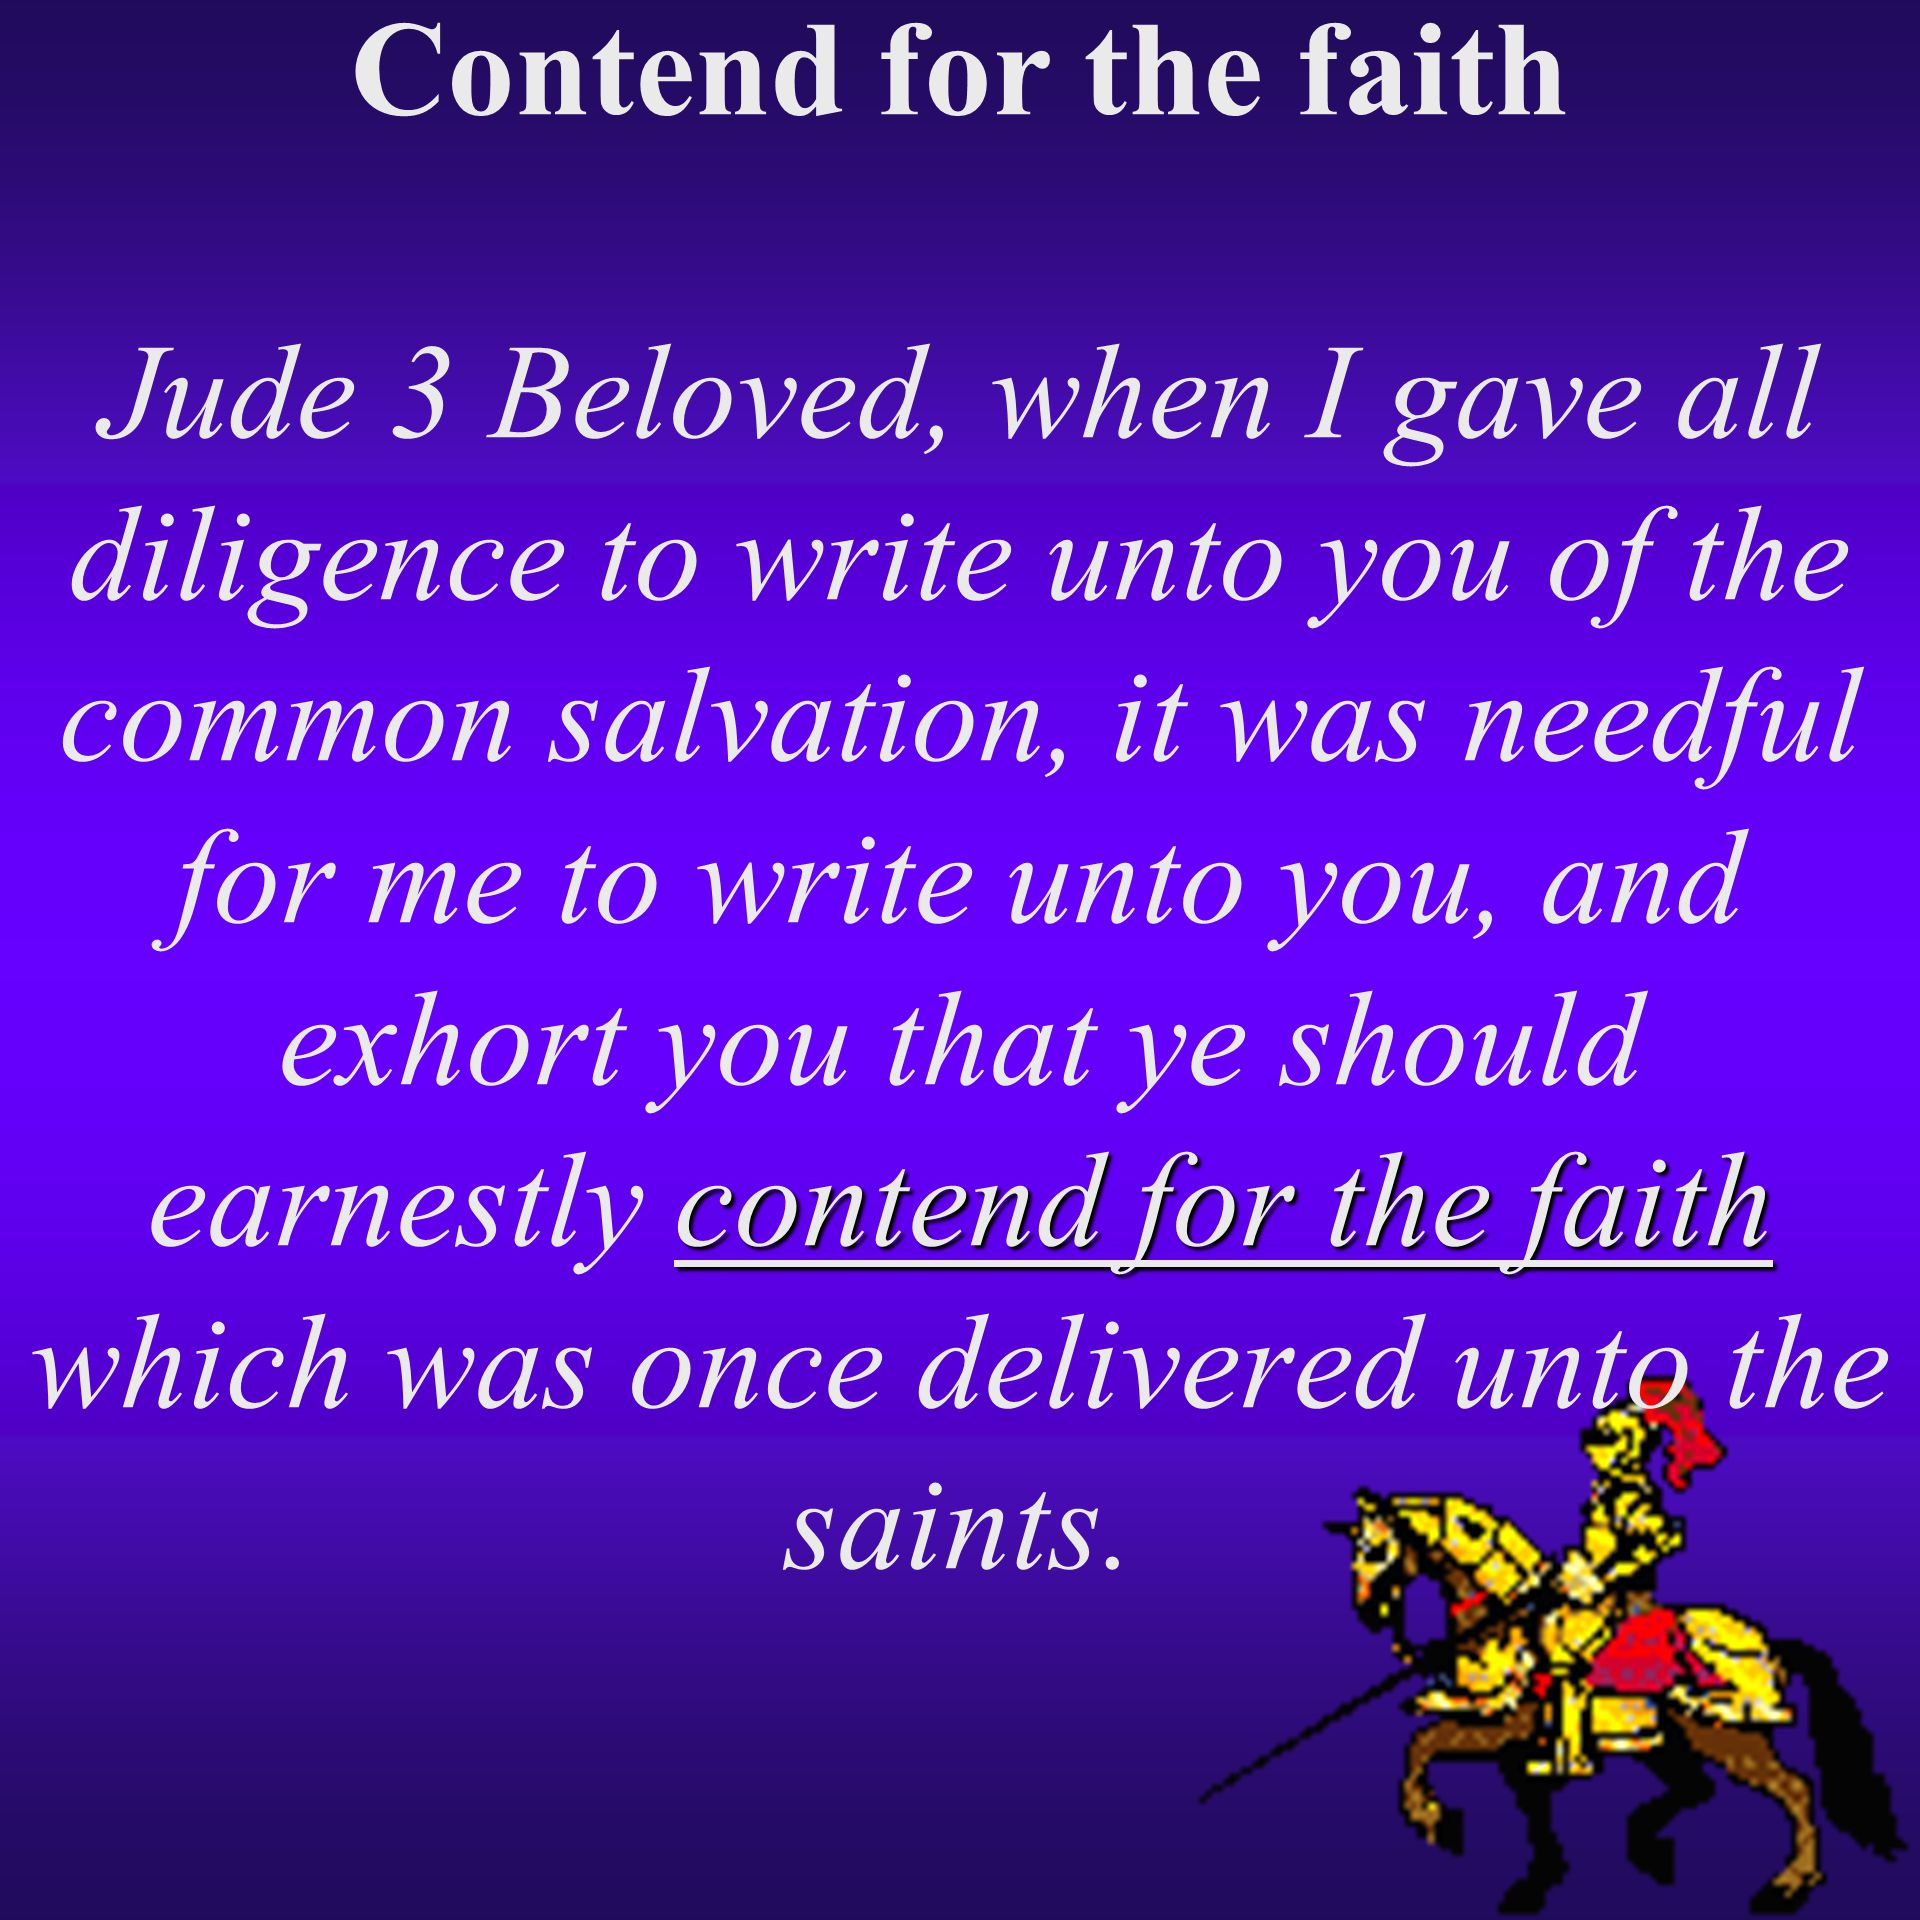 Contend for the faith Jude 3 Beloved, when I gave all diligence to write unto you of the common salvation, it was needful for me to write unto you, and exhort you that ye should earnestly contend for the faith which was once delivered unto the saints.